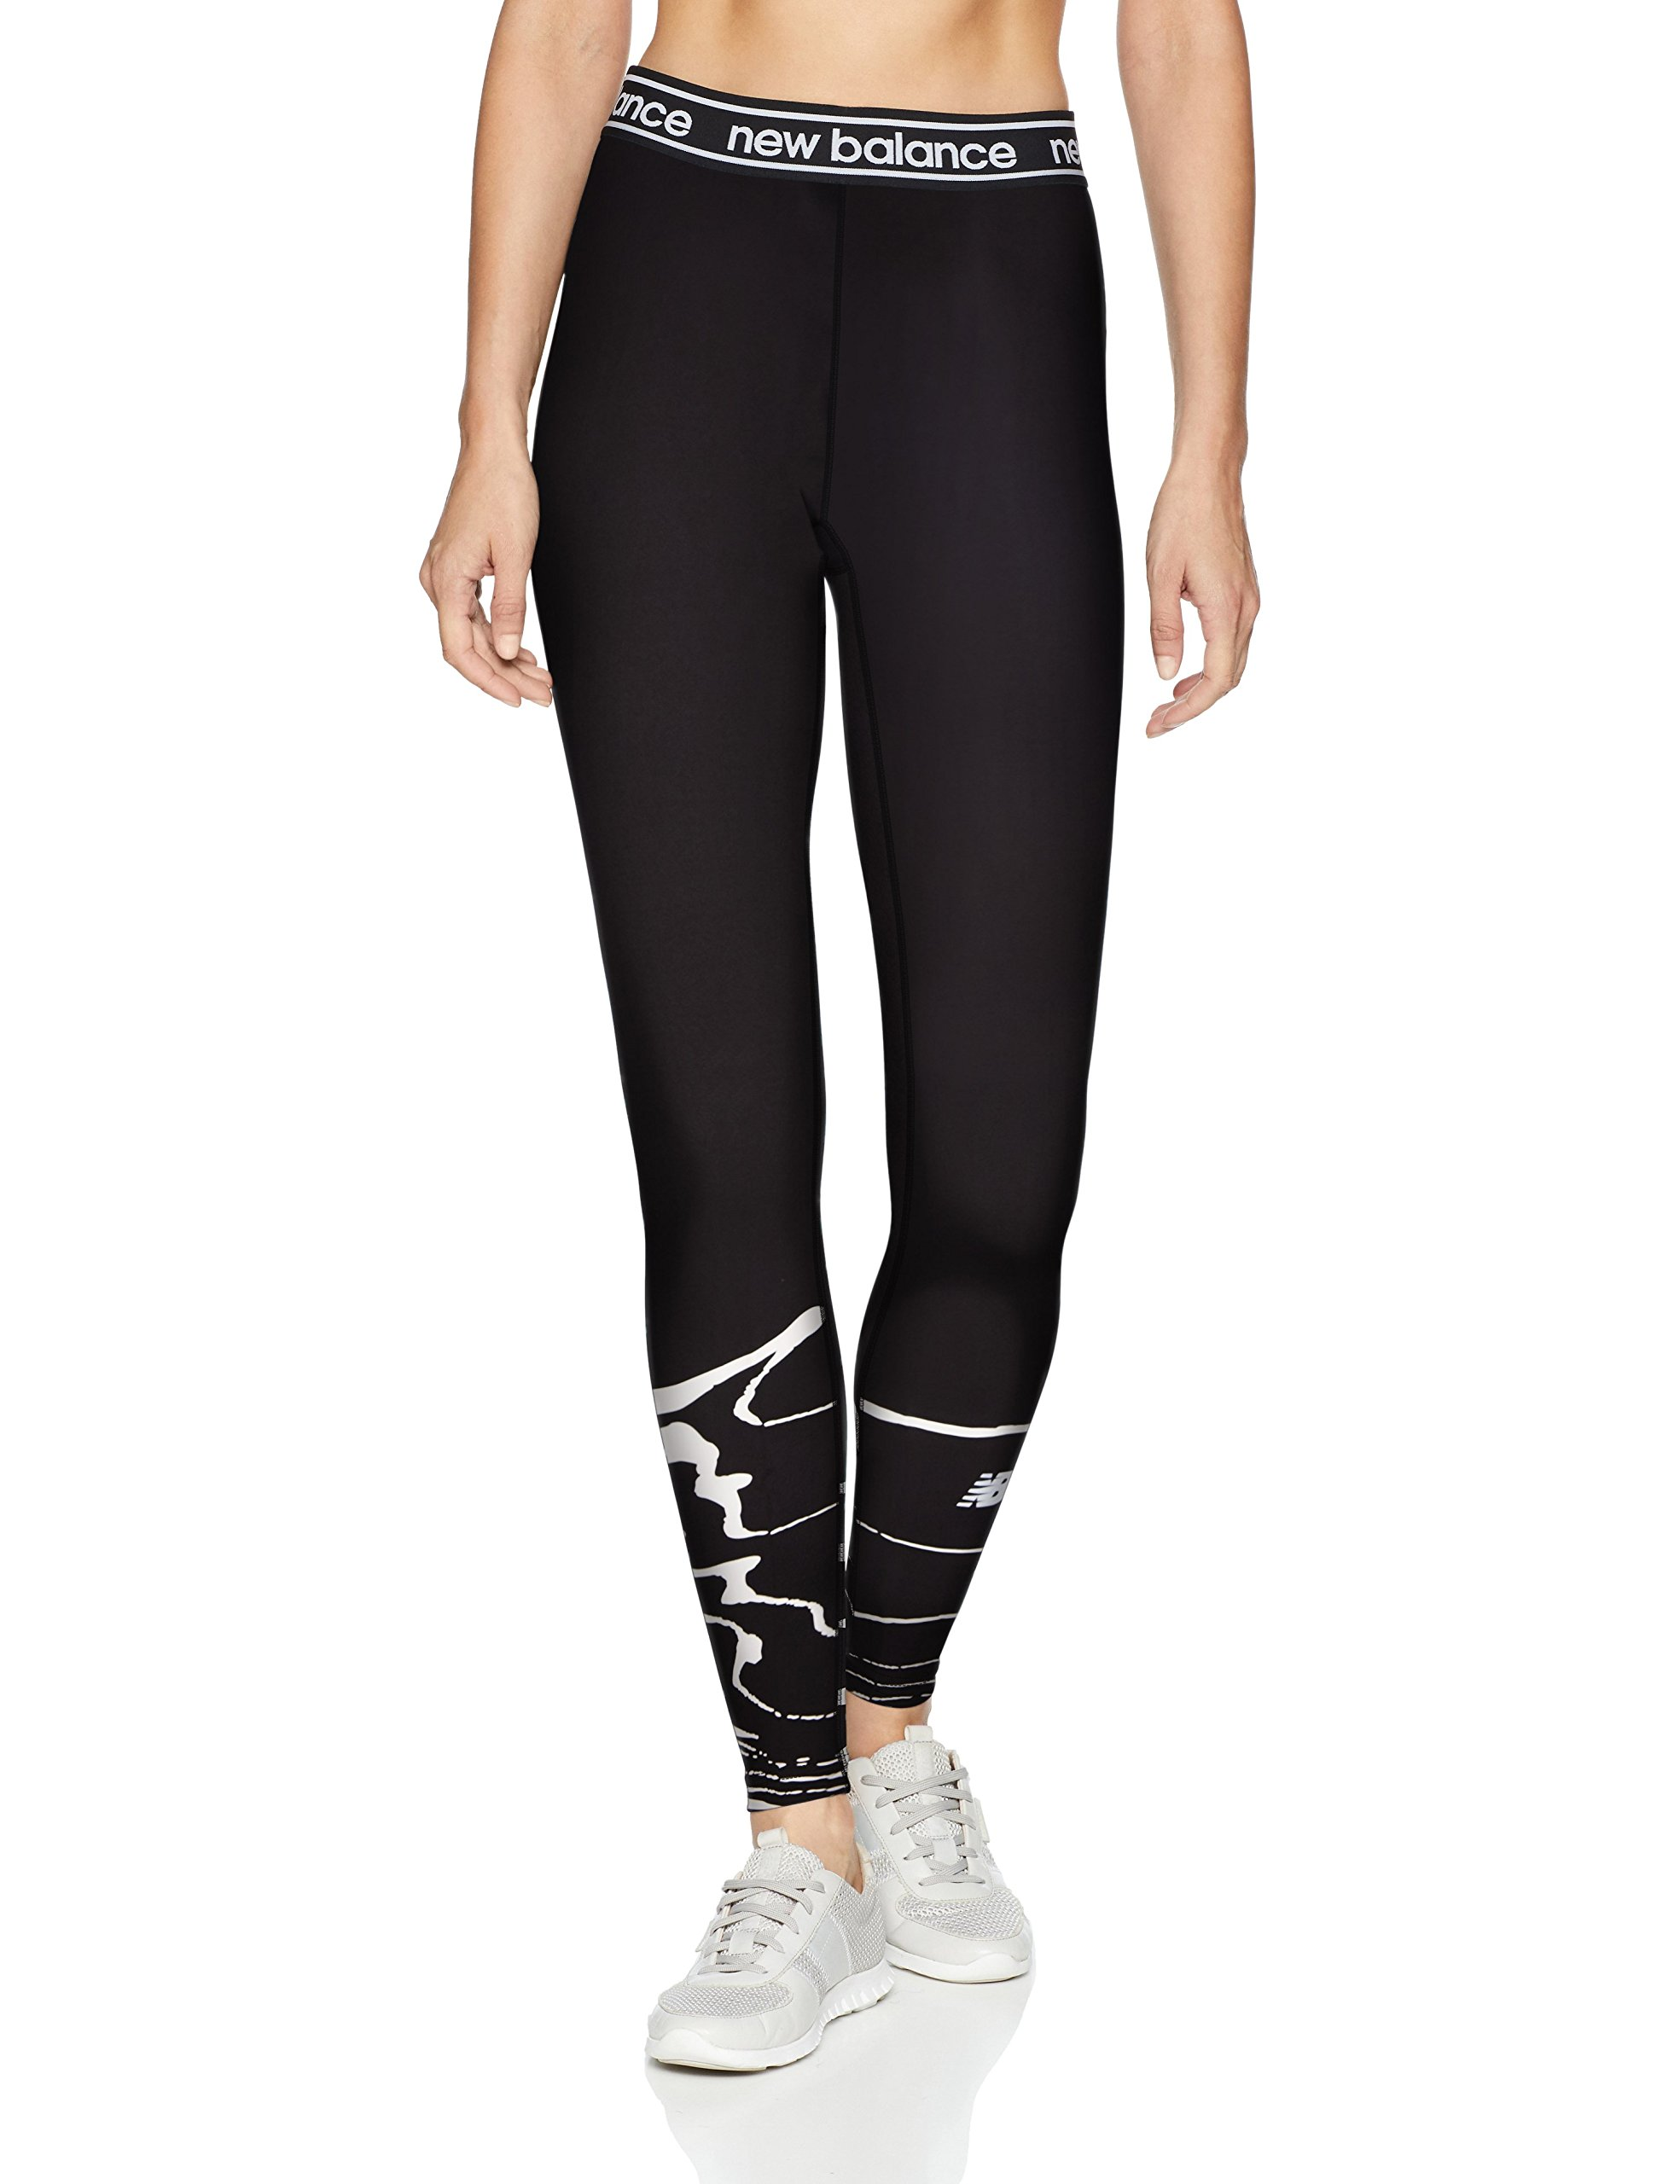 71yz0fYXewL - New Balance Women's Printed Accelerate Tight